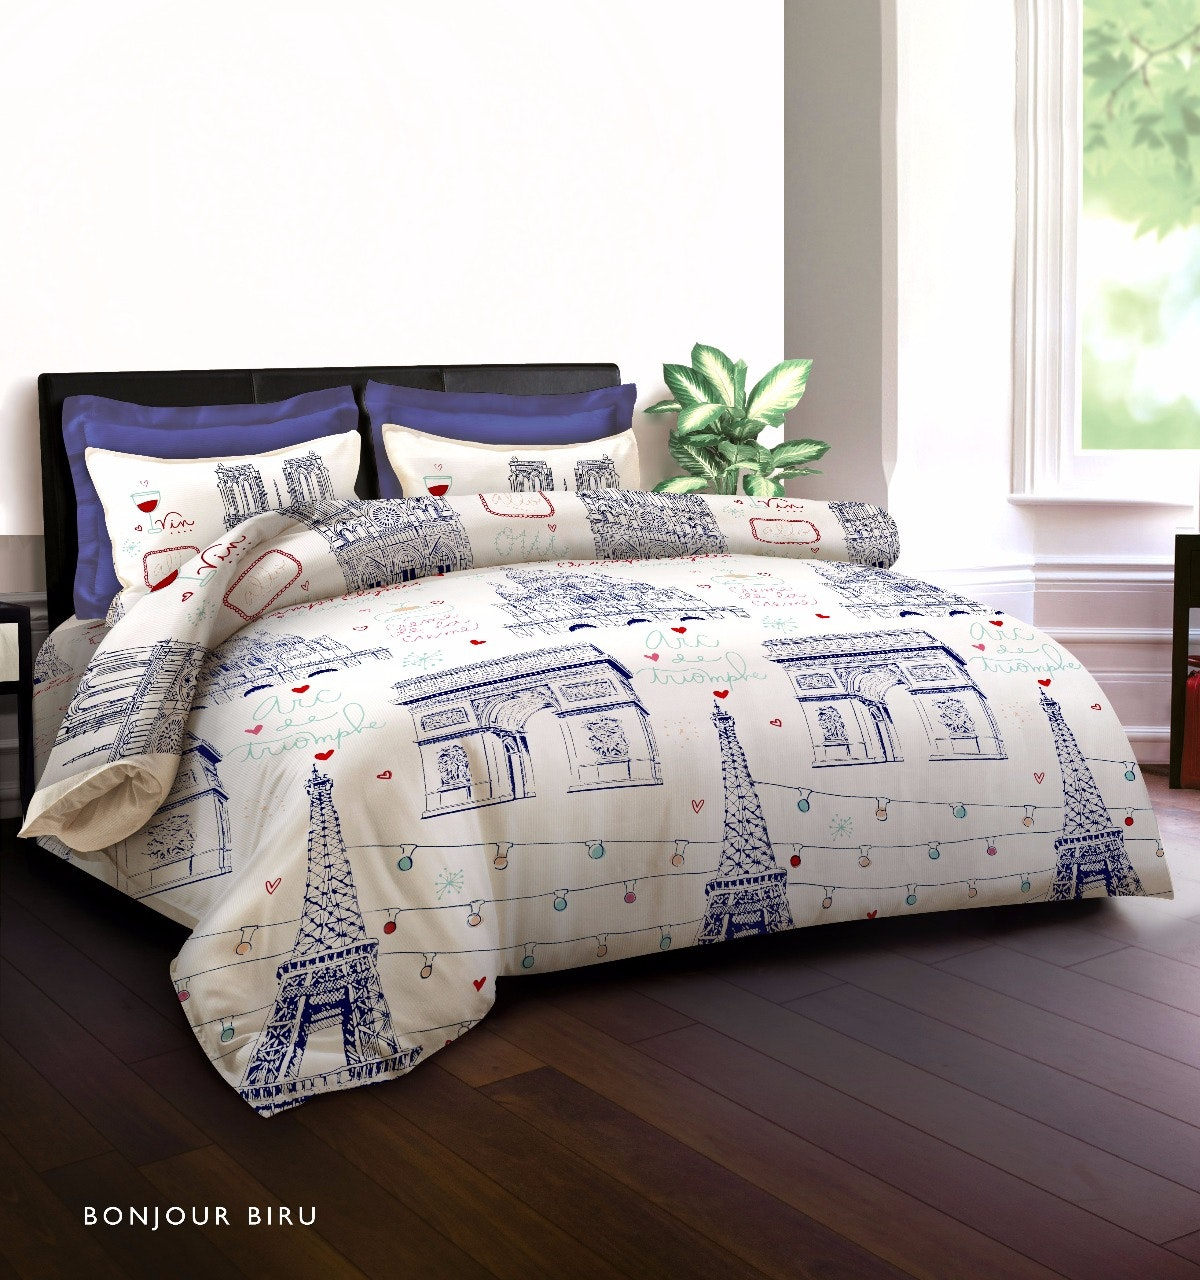 King Rabbit Set Sprei Sarung Bantal Queen Motif Bonjour - Biru Uk 160x200x40 cm